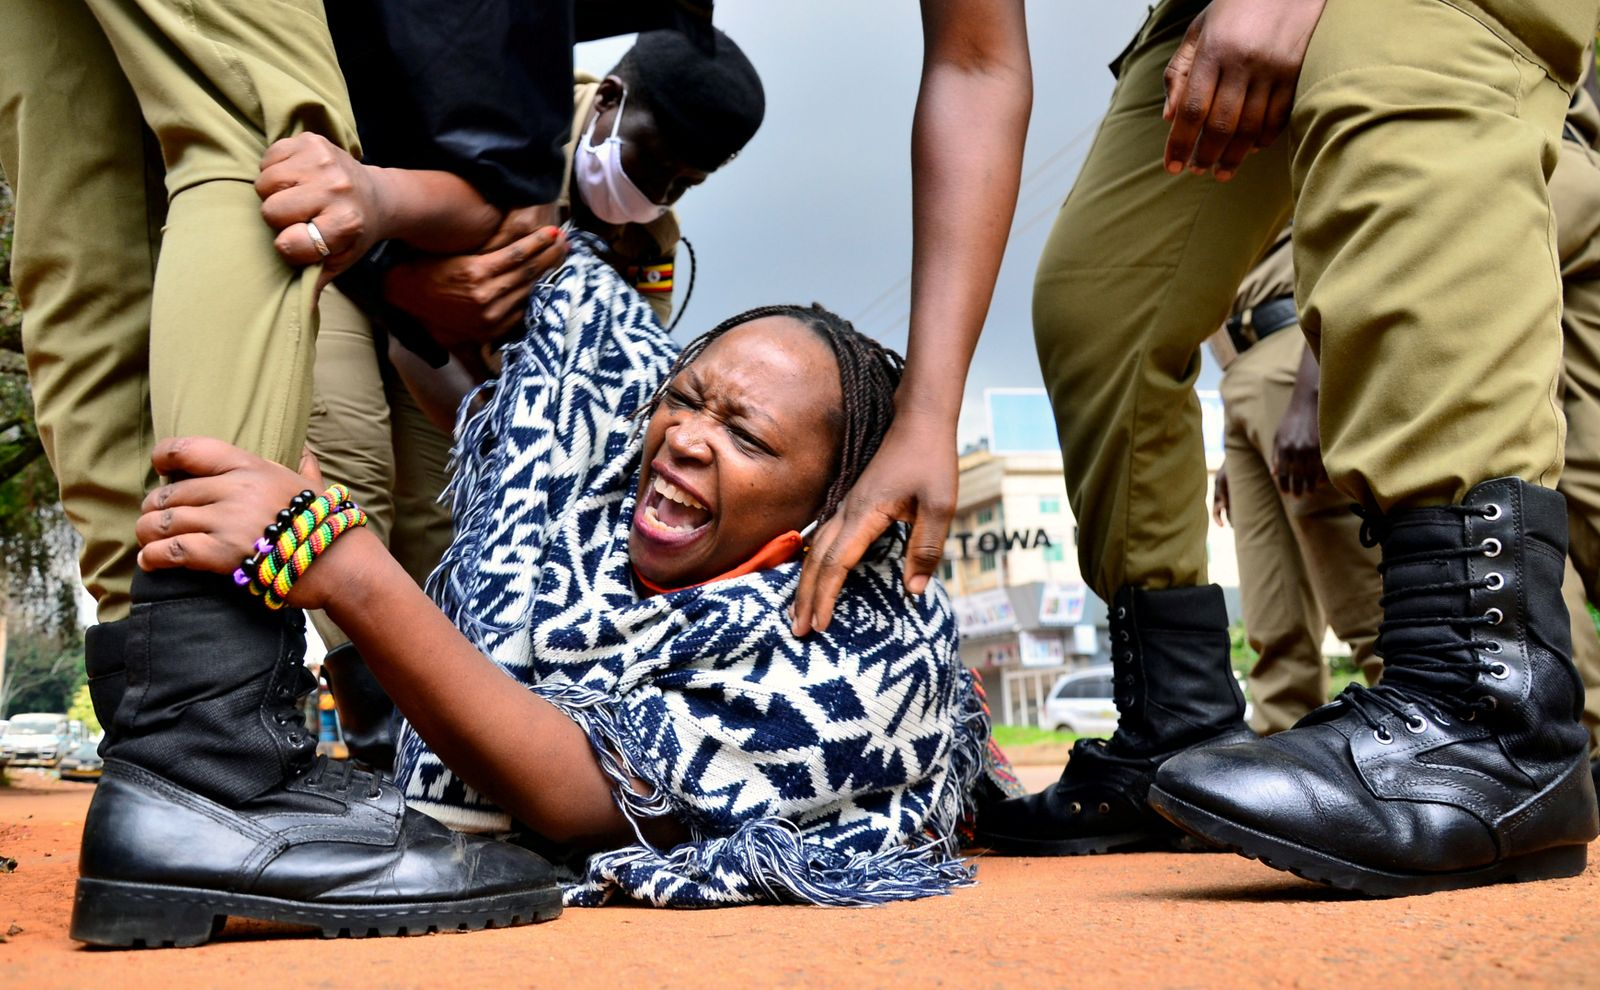 Ugandan academic Stella Nyanzi reacts as police officers detain her for protesting against the way that government distributes the relief food and the lockdown situation to control the spread of the coronavirus disease in Kampala